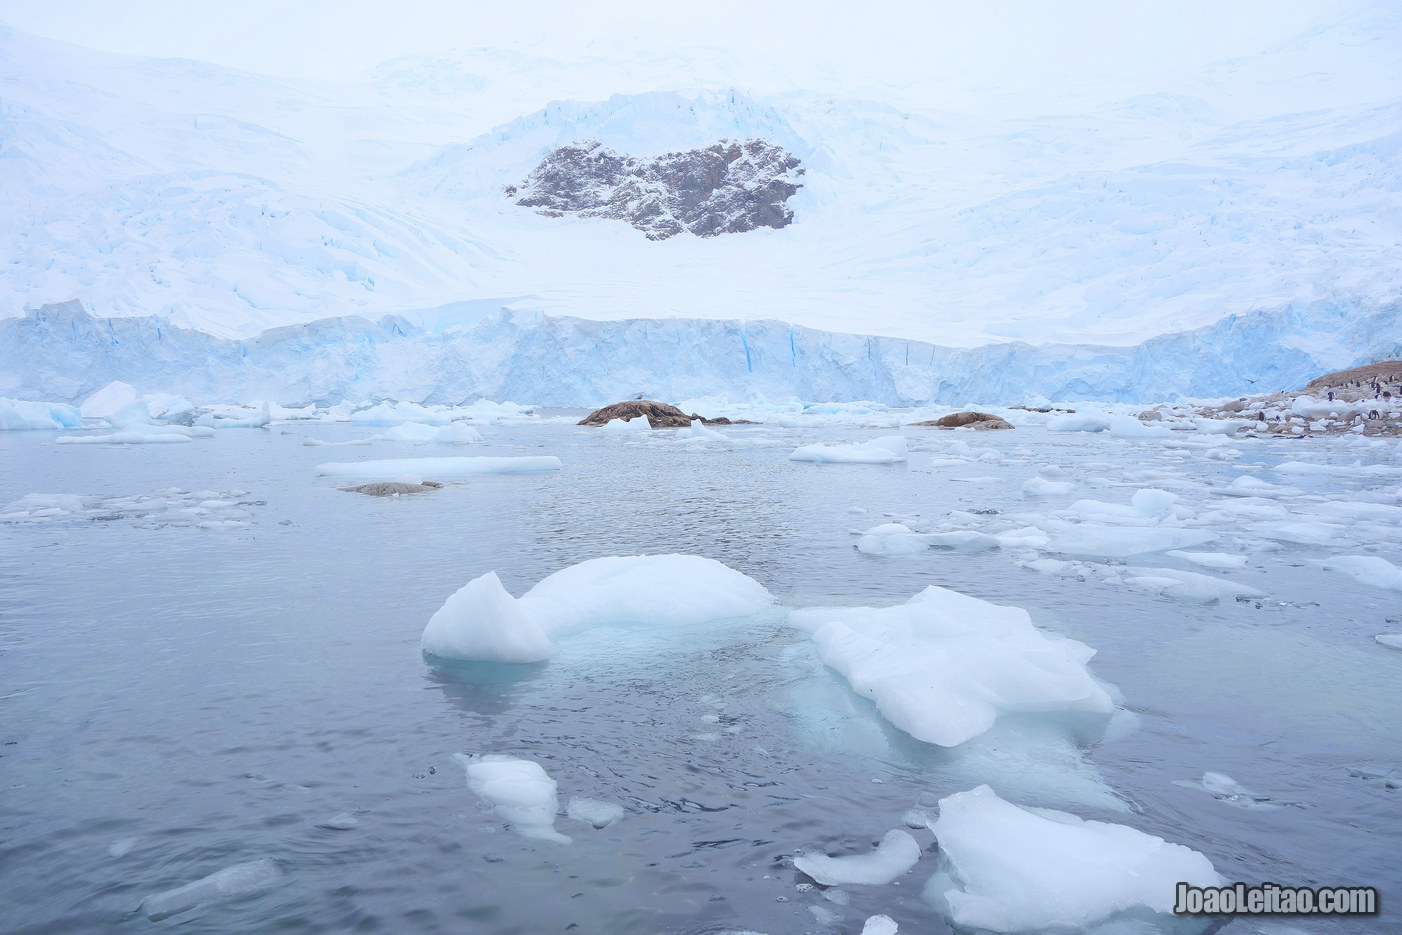 Listening to the Silence of Antarctica